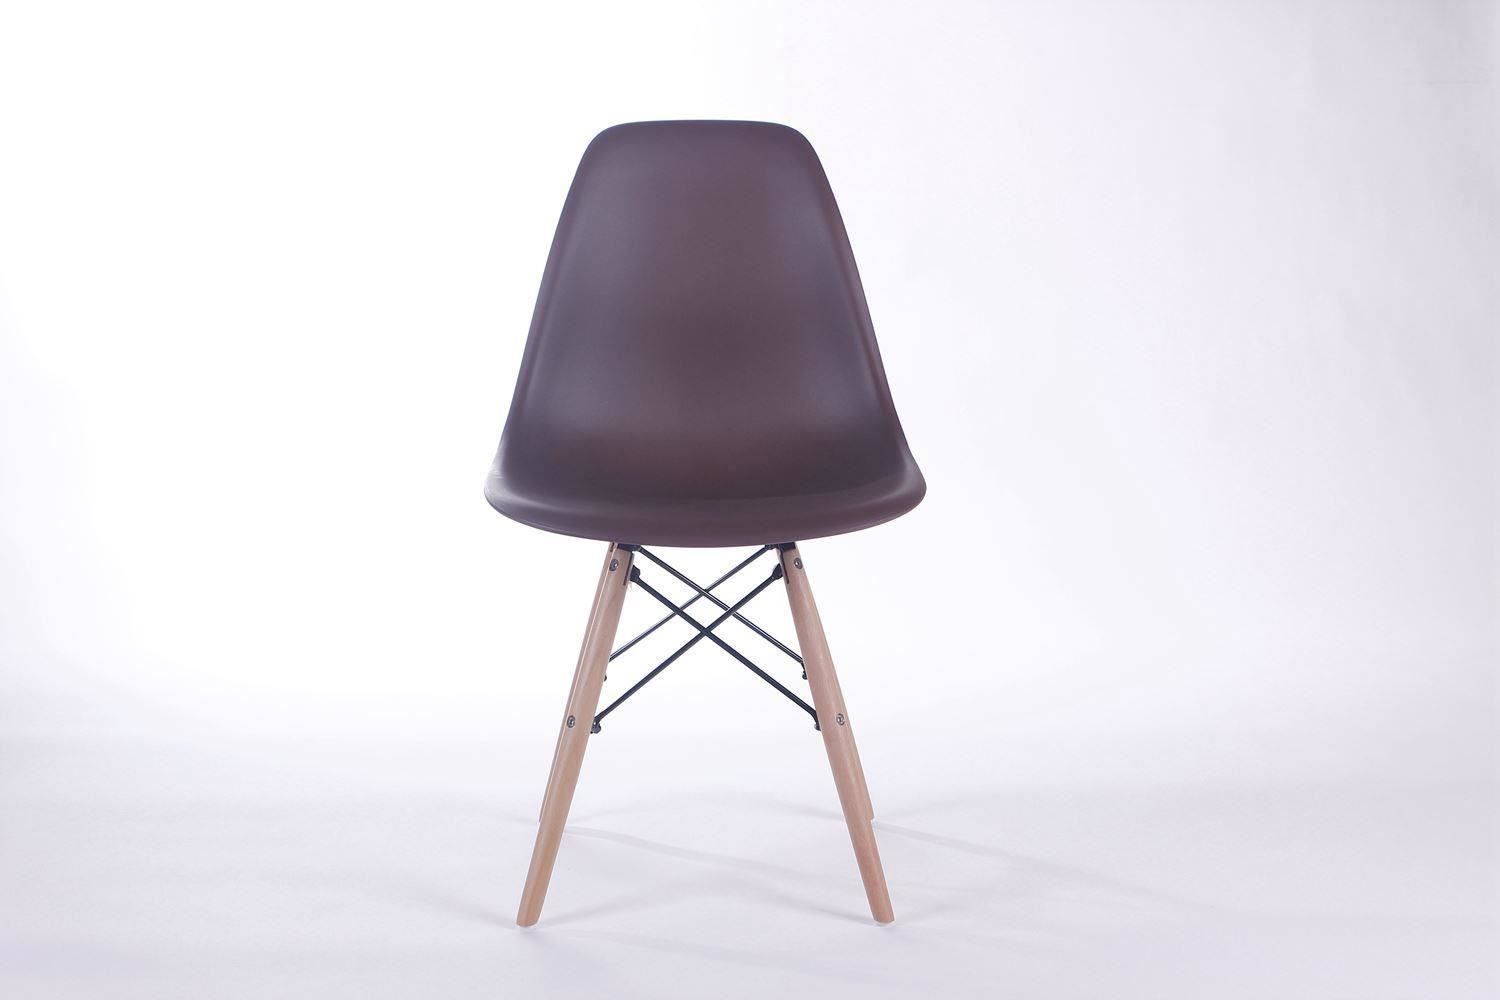 Charles Ray Eames Eiffel Inspired DSW Side Dining Chair  : 10e996d1 506b 4bd1 ba3a fd5a6fba695e from www.ebay.co.uk size 1500 x 1000 jpeg 50kB